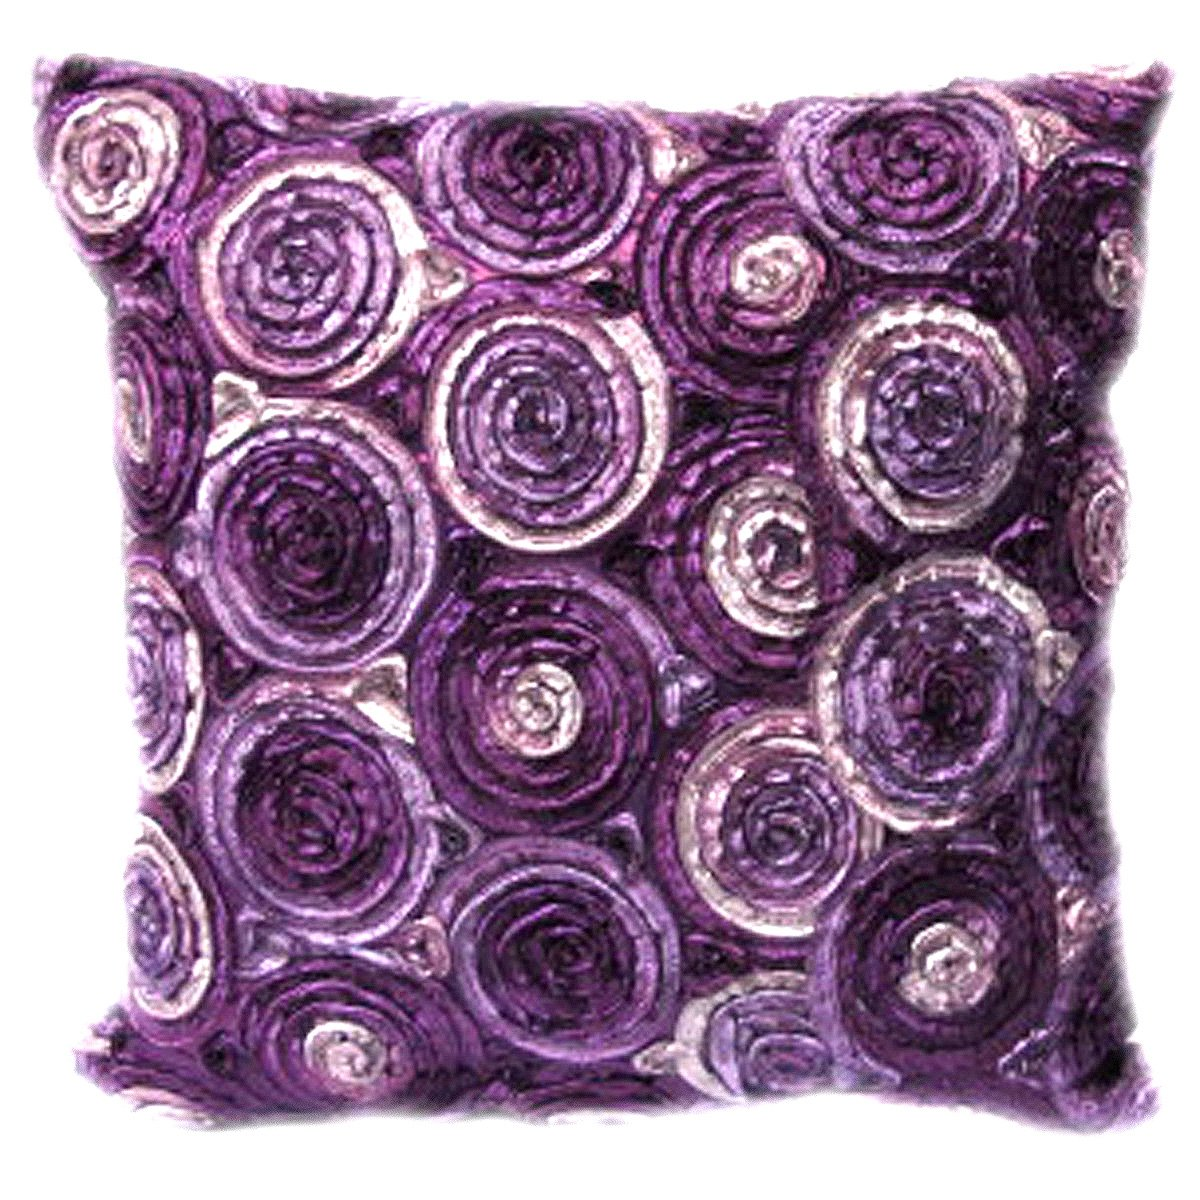 (Single) Two Tone 3d Bouquet of Purple Roses Throw Cushion Cover/pillow Sham Handmade By Satin and Thai Silk for Decorative Sofa, Car and Living Room Size 16 X 16 Inches